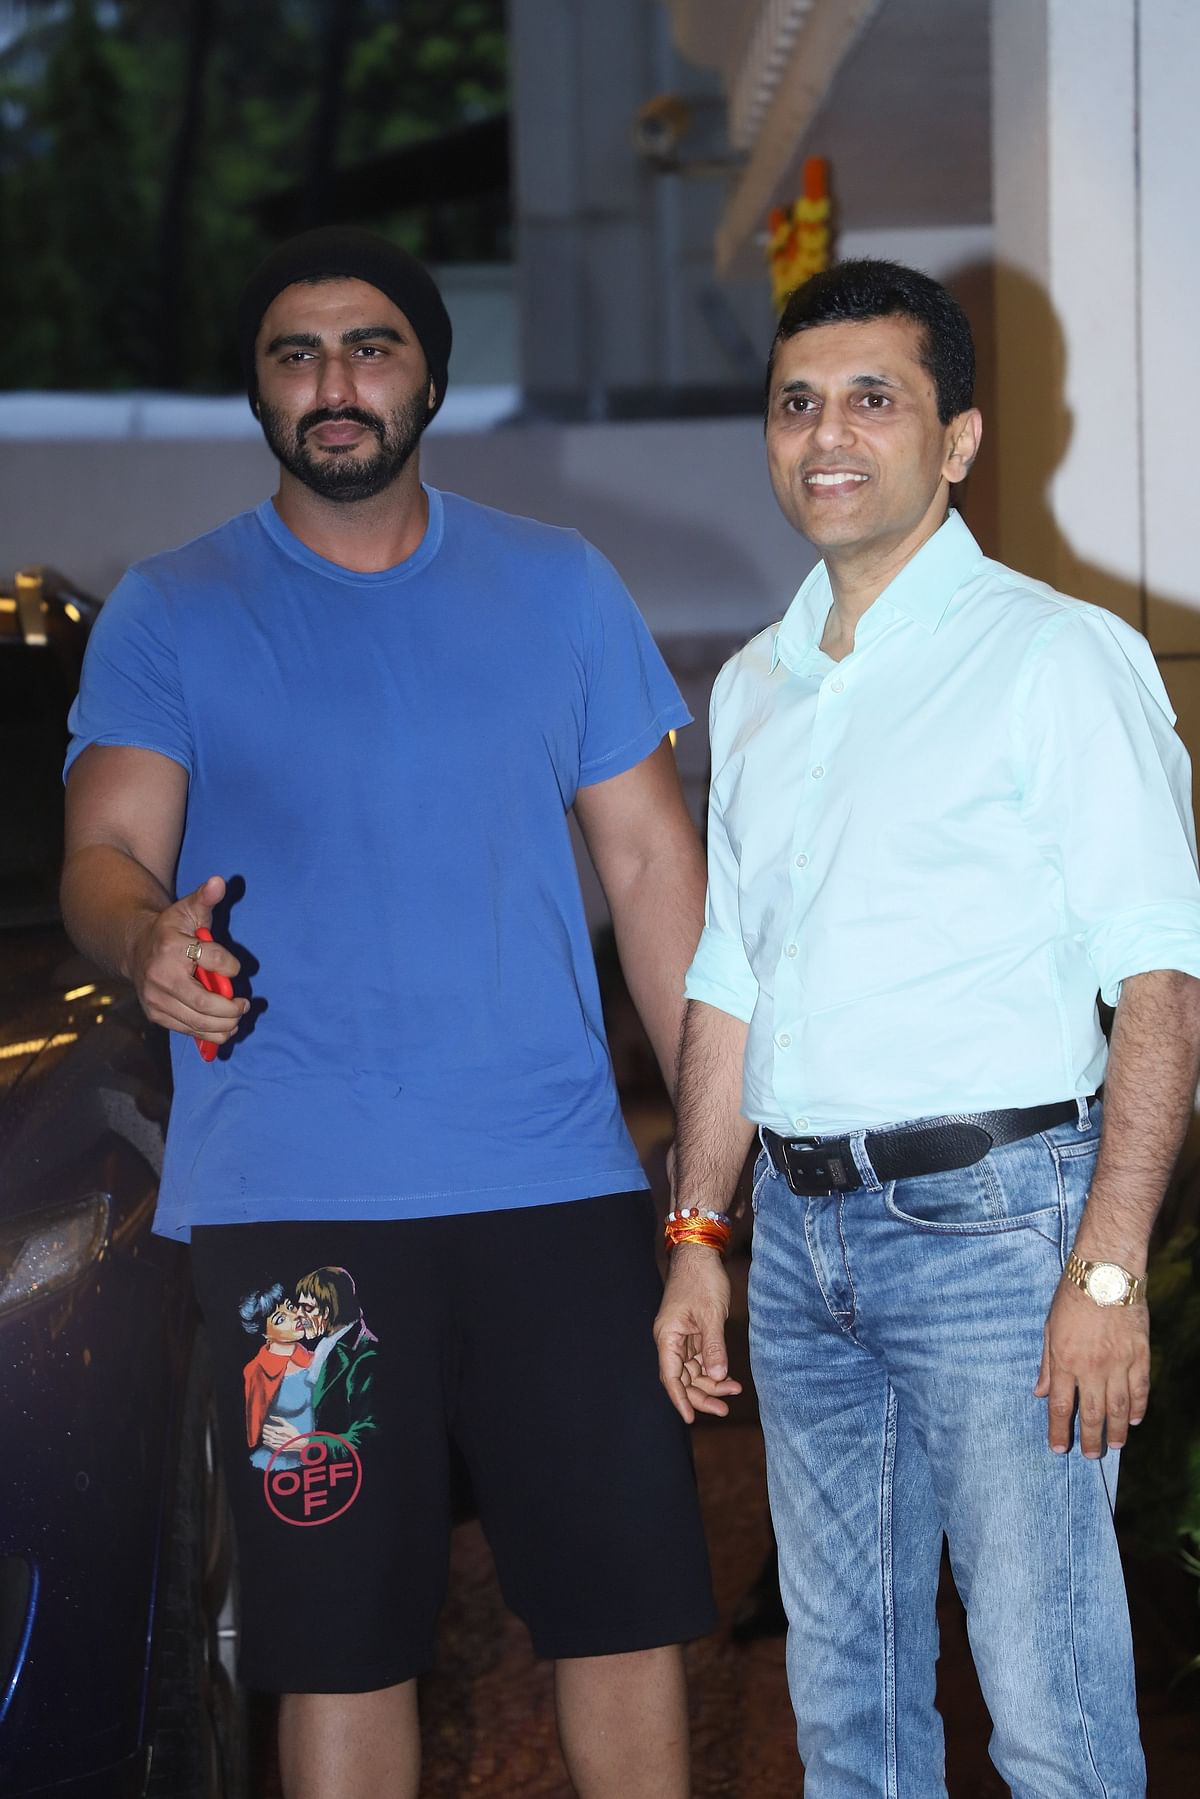 Arjun Kapoor who just came back from his vacation was seen at Anand Pandit's Office in Mumbai.